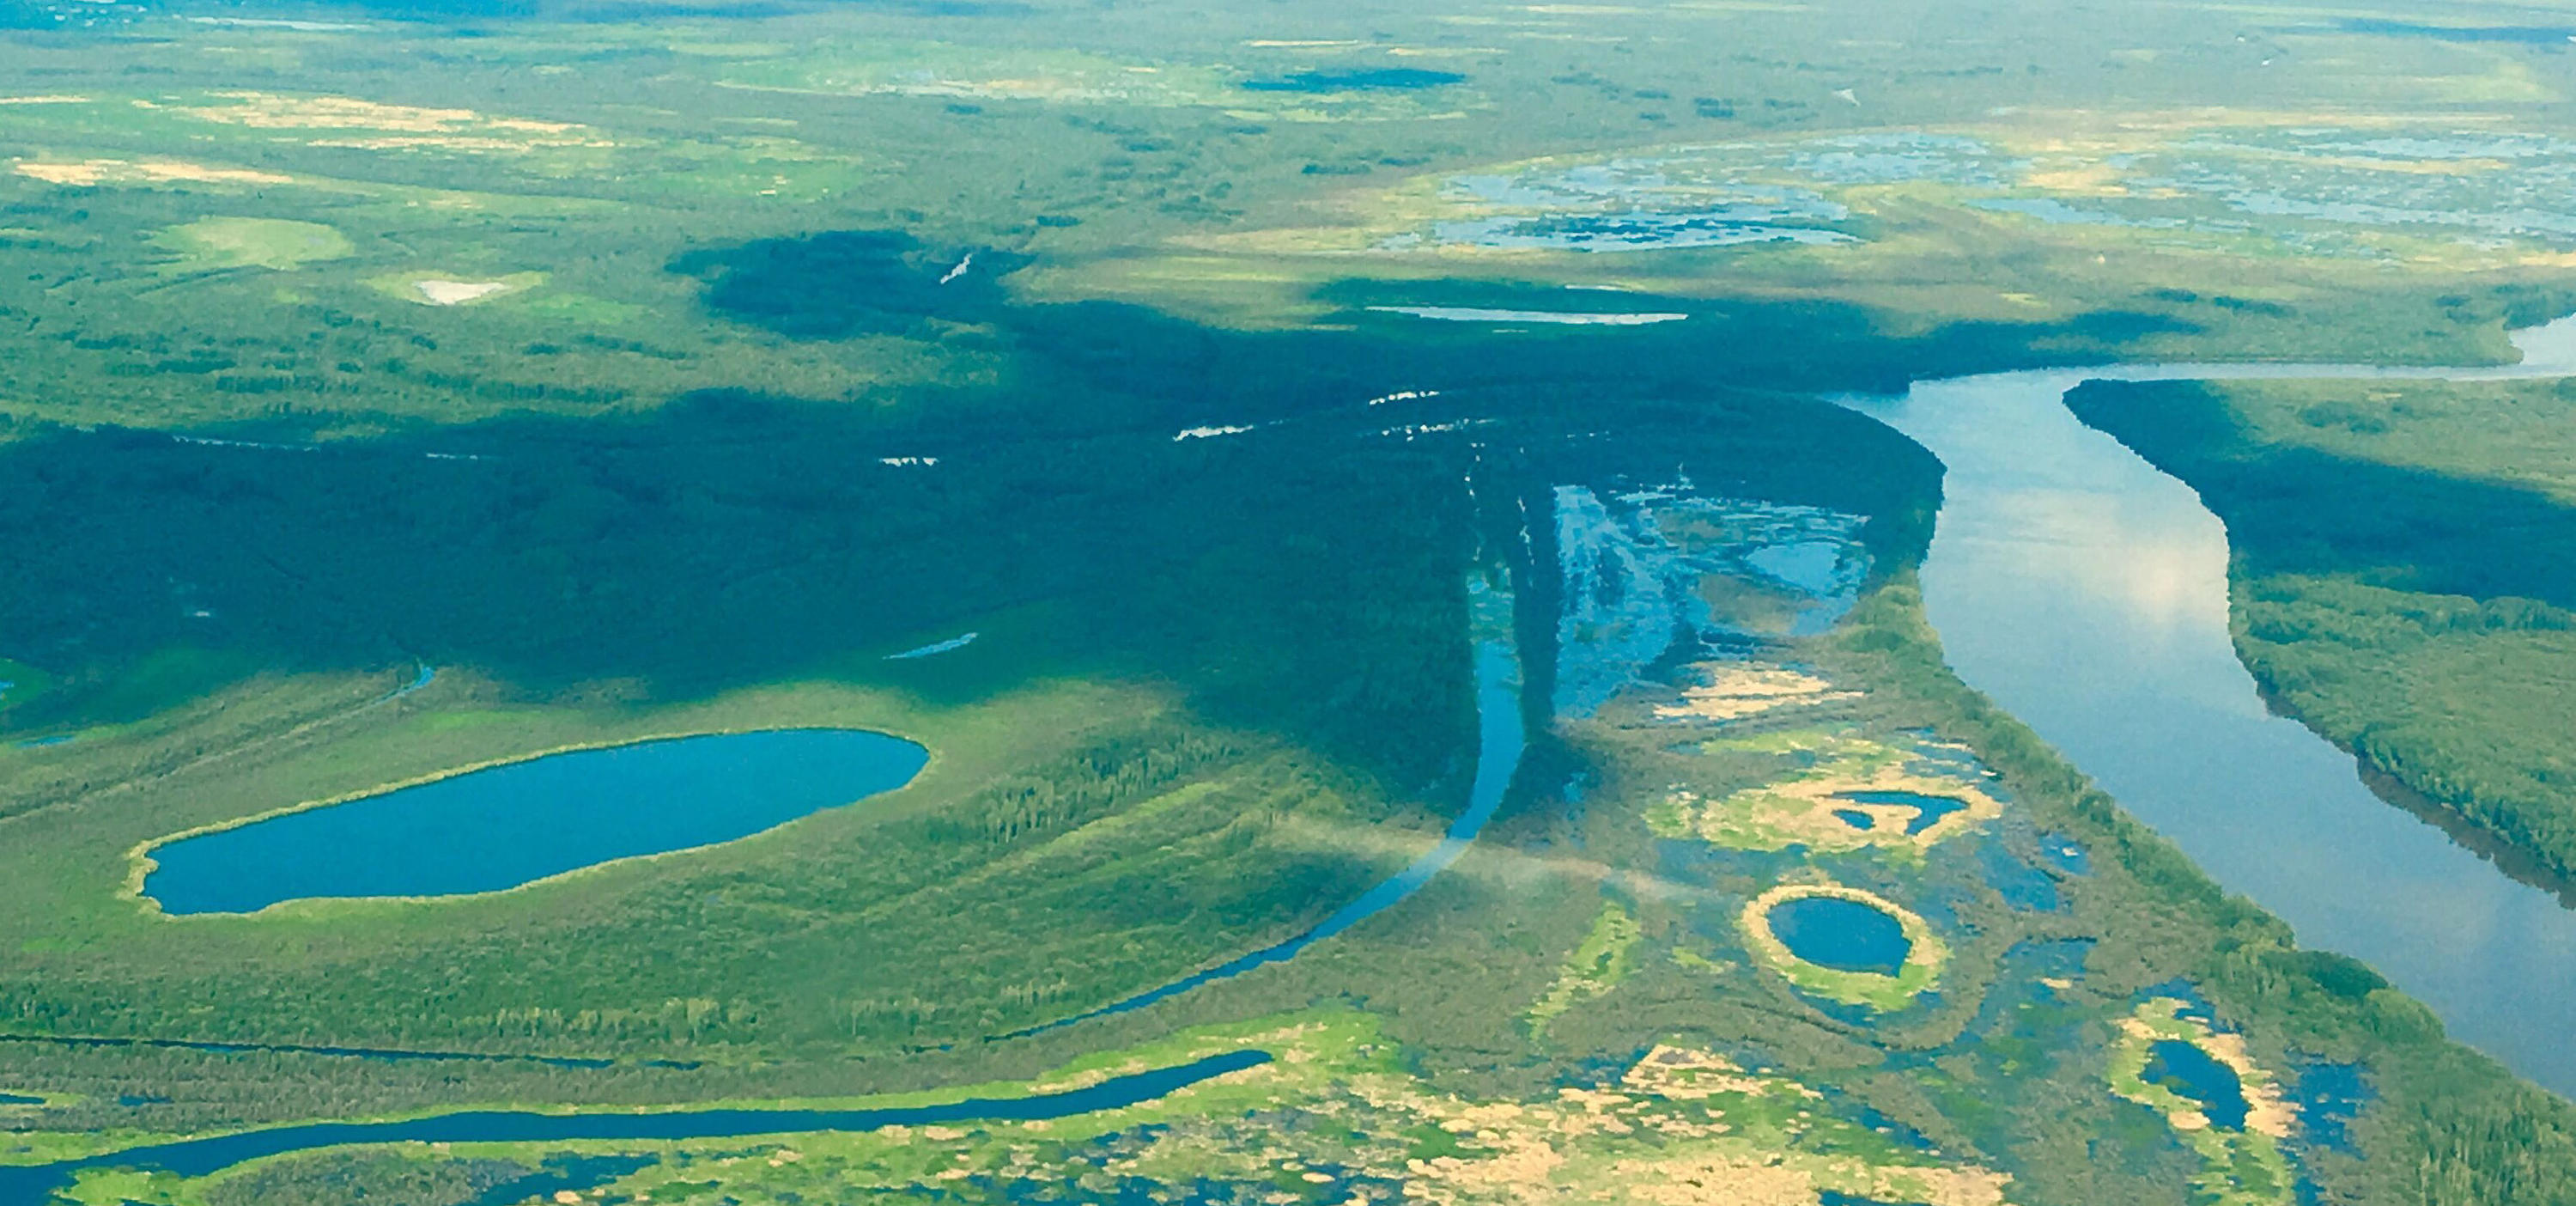 Athabasca Delta aerial view